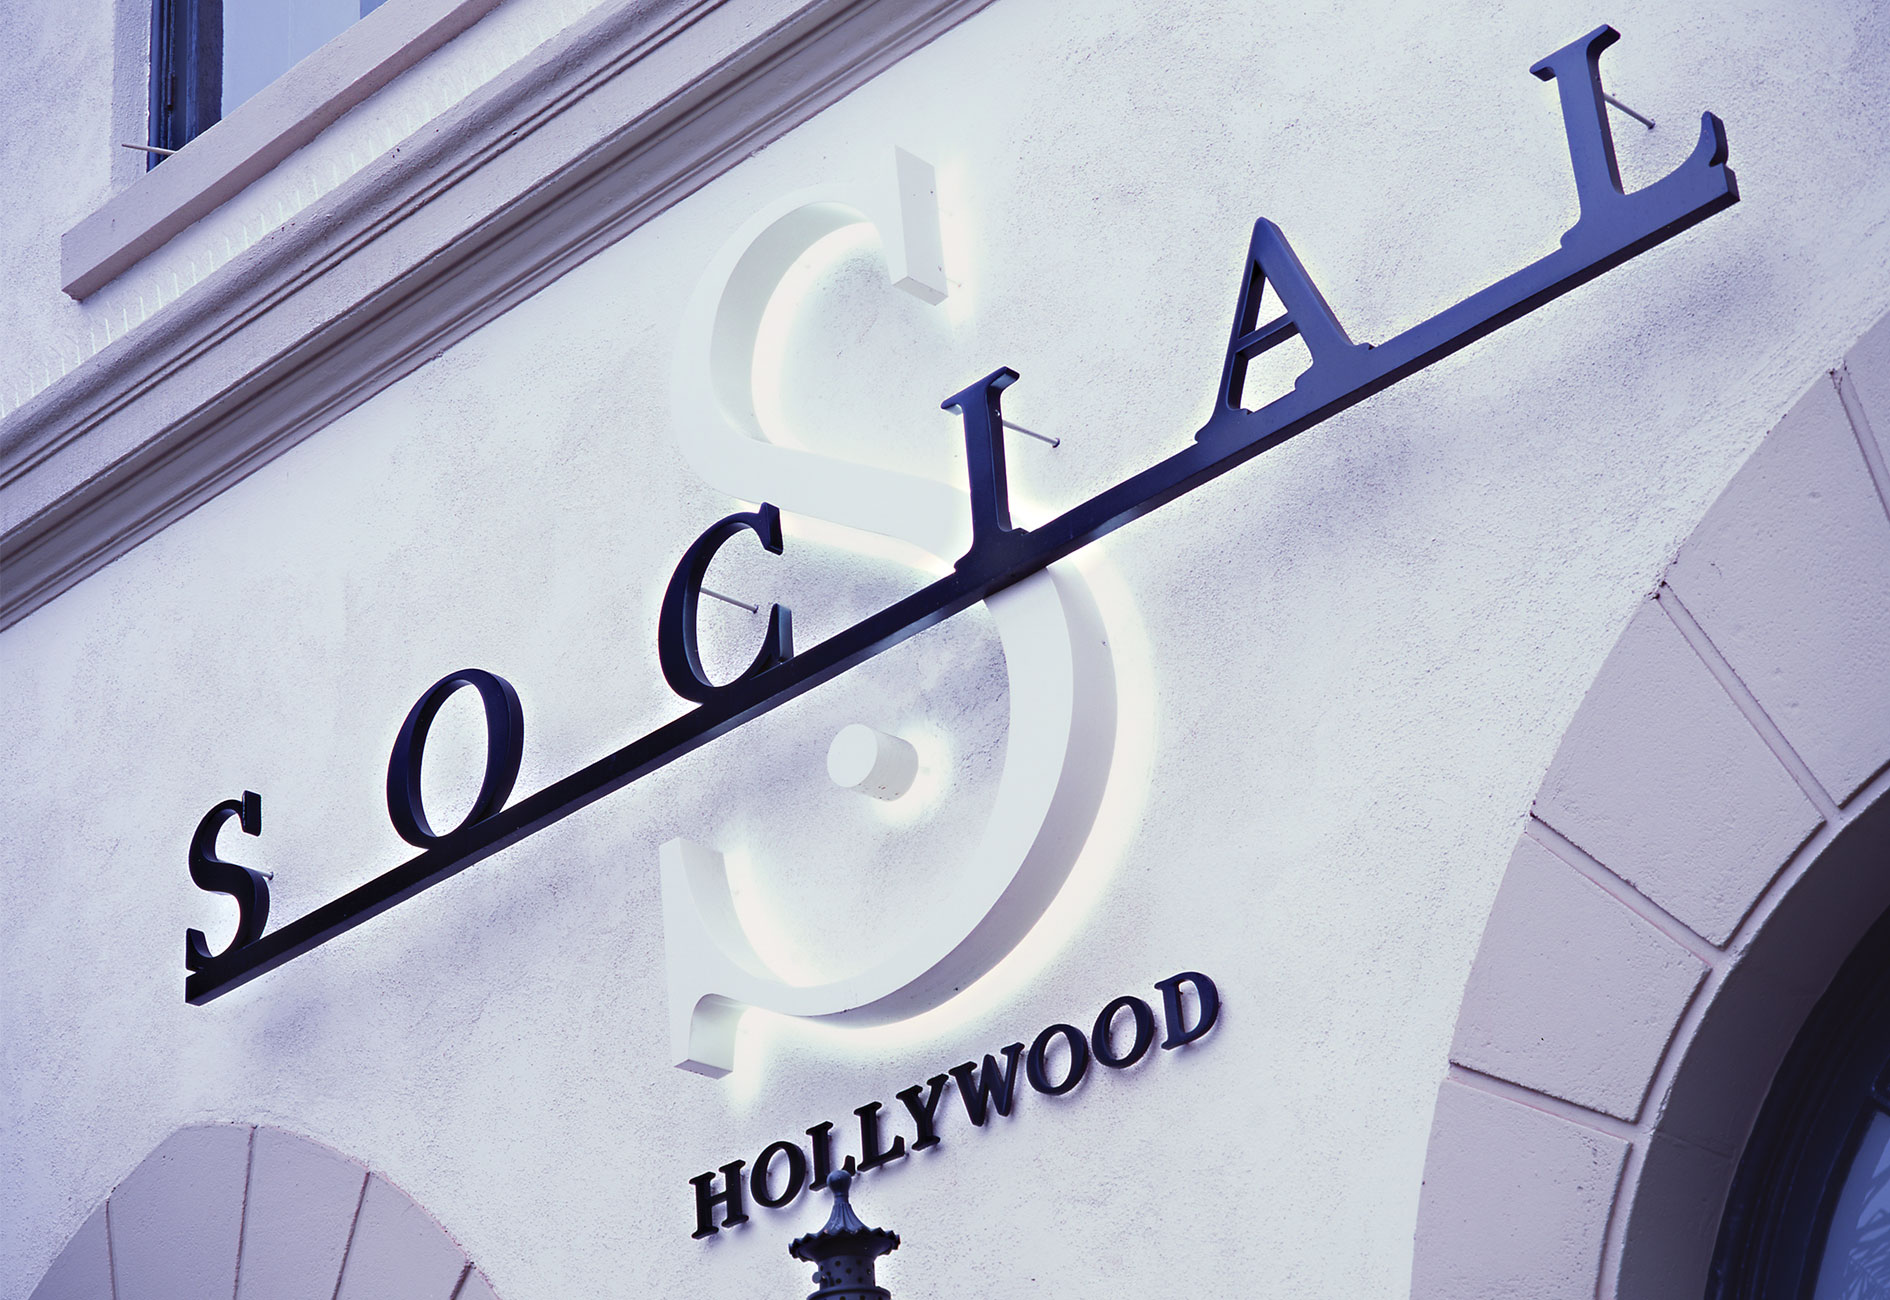 SOCIAL HOLLYWOOD by Mark Zeff Design